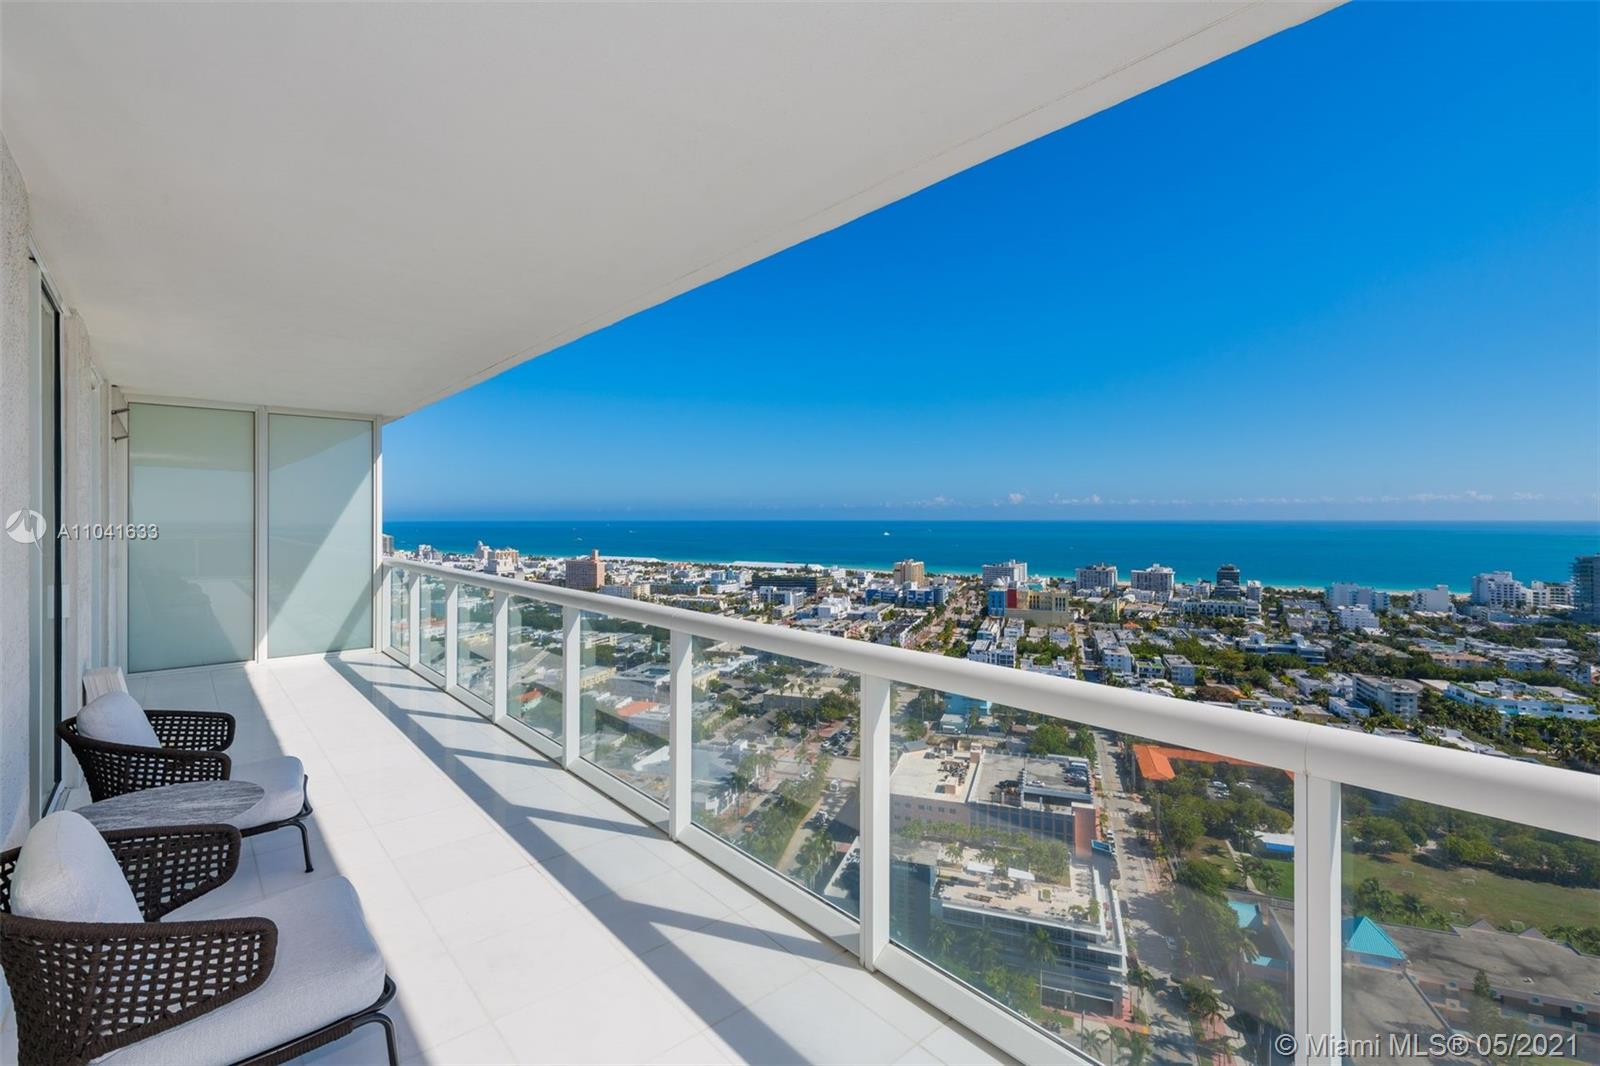 """Sought after """"07"""" line on high floor considered to be the best 2 bedroom at ICON South Beach. Spacious (1815 SF) corner unit with wide wraparound balcony featuring jaw-dropping water views from every room. Feels like you are living on a cloud. Designer kitchen with Miele appliances and Subzero refrigerator. Top of the line remote sheer and black-out shades throughout.  ICON South Beach is a is Philippe Starck designed, full service, waterfront building with marina and endless amenities including a state of the art gym, 2 pools, private restaurant, spa services, 24HR valet and security.  In walking distance to the beach, 5 star restaurants and South Point Park."""